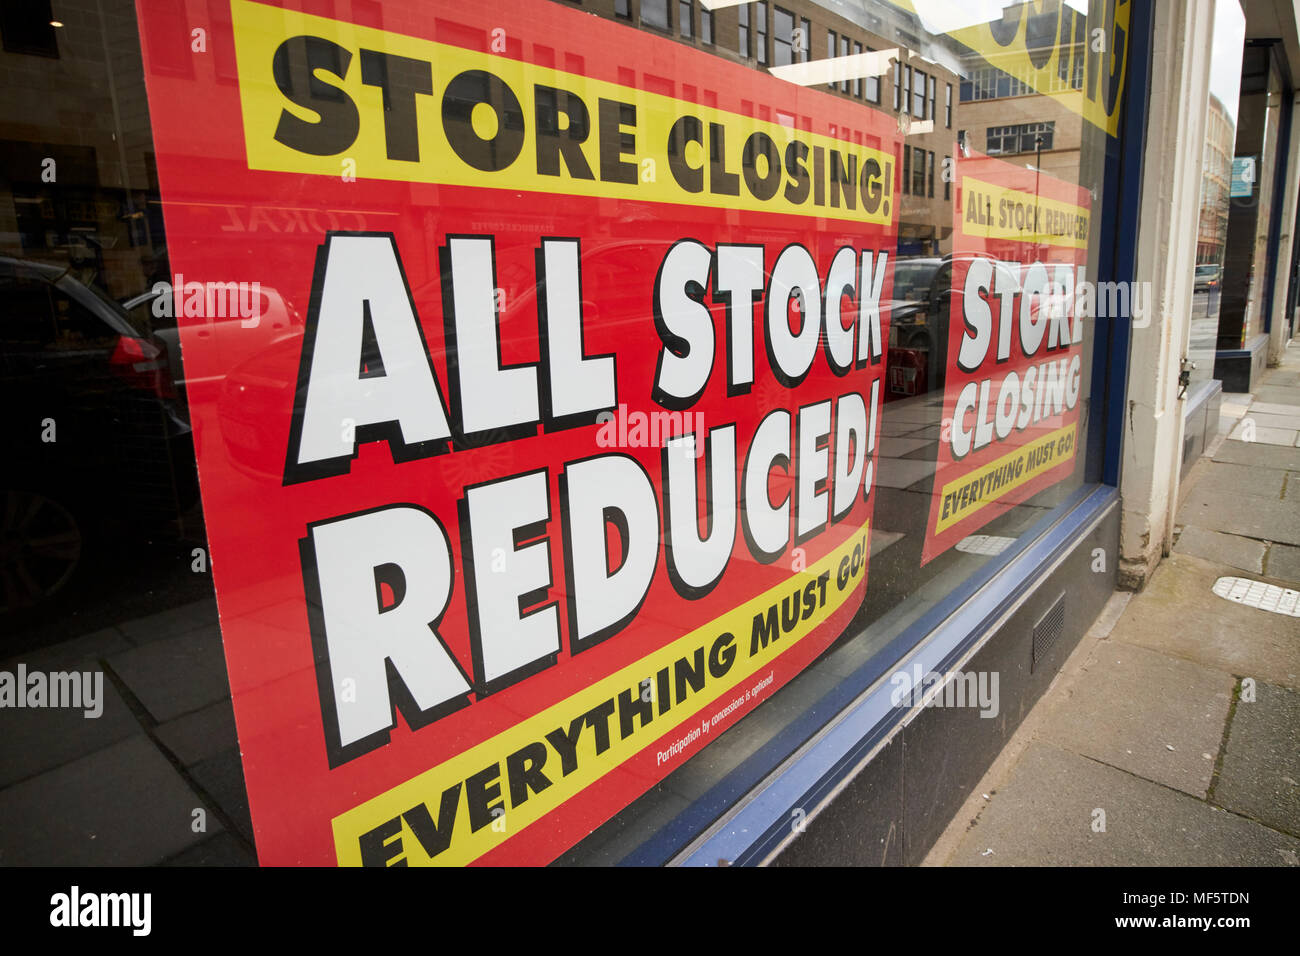 maplin store with all stock reduced store closing signs in window Bath Somerset England UK - Stock Image